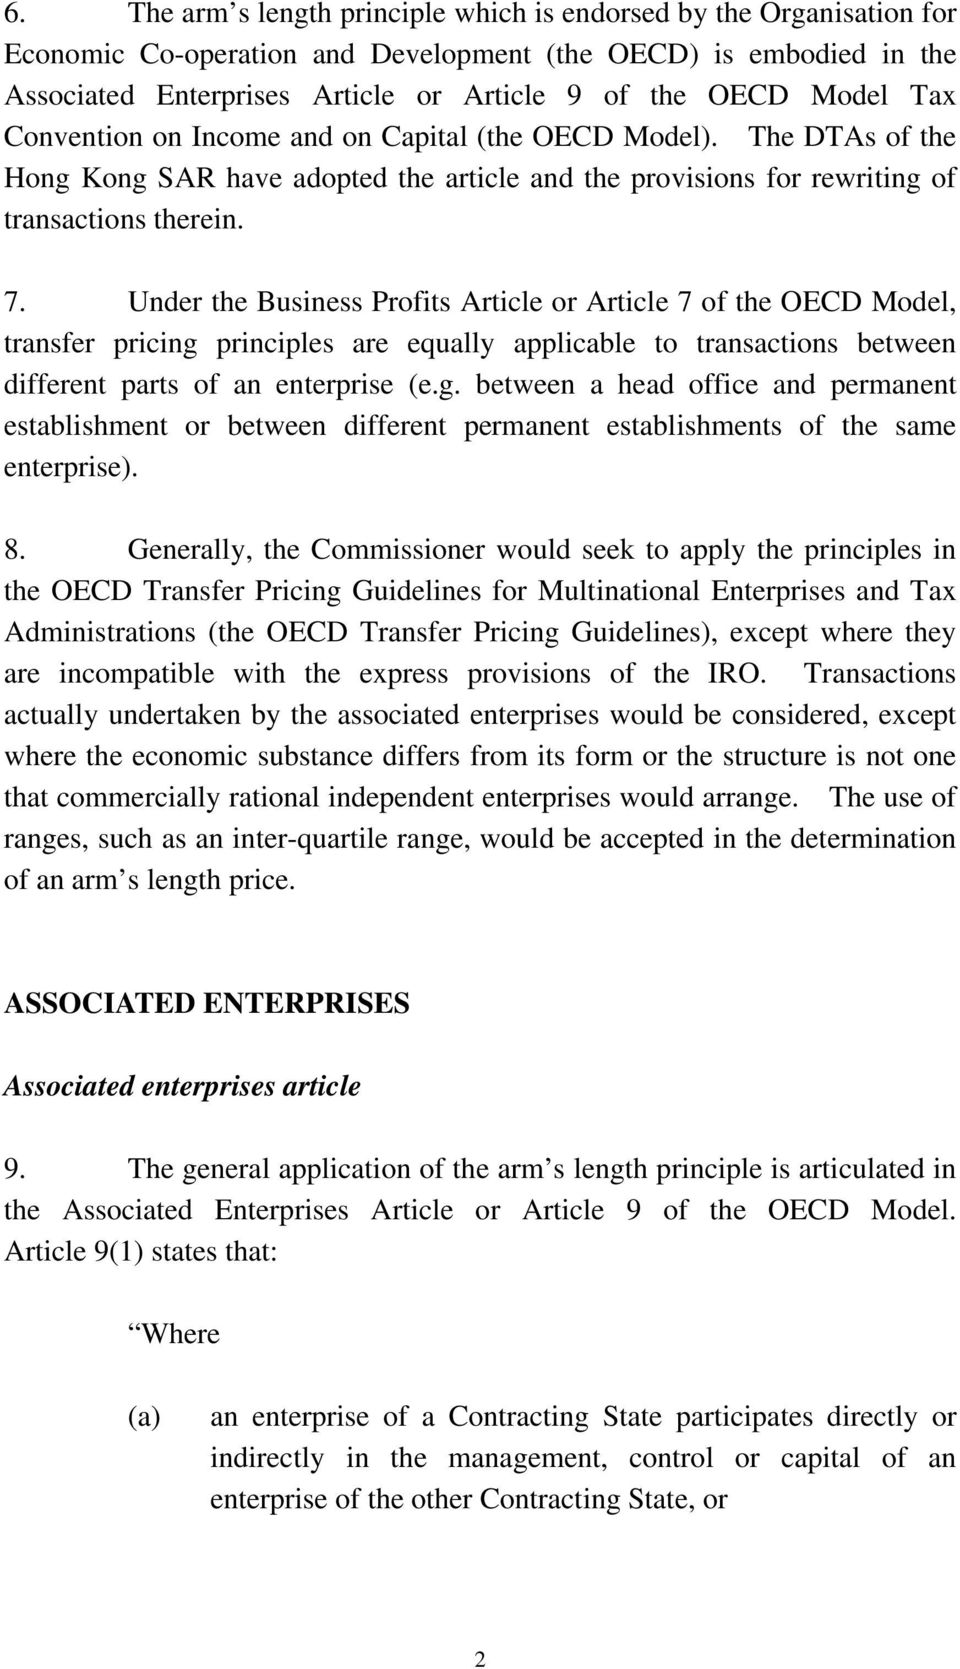 Under the Business Profits Article or Article 7 of the OECD Model, transfer pricing